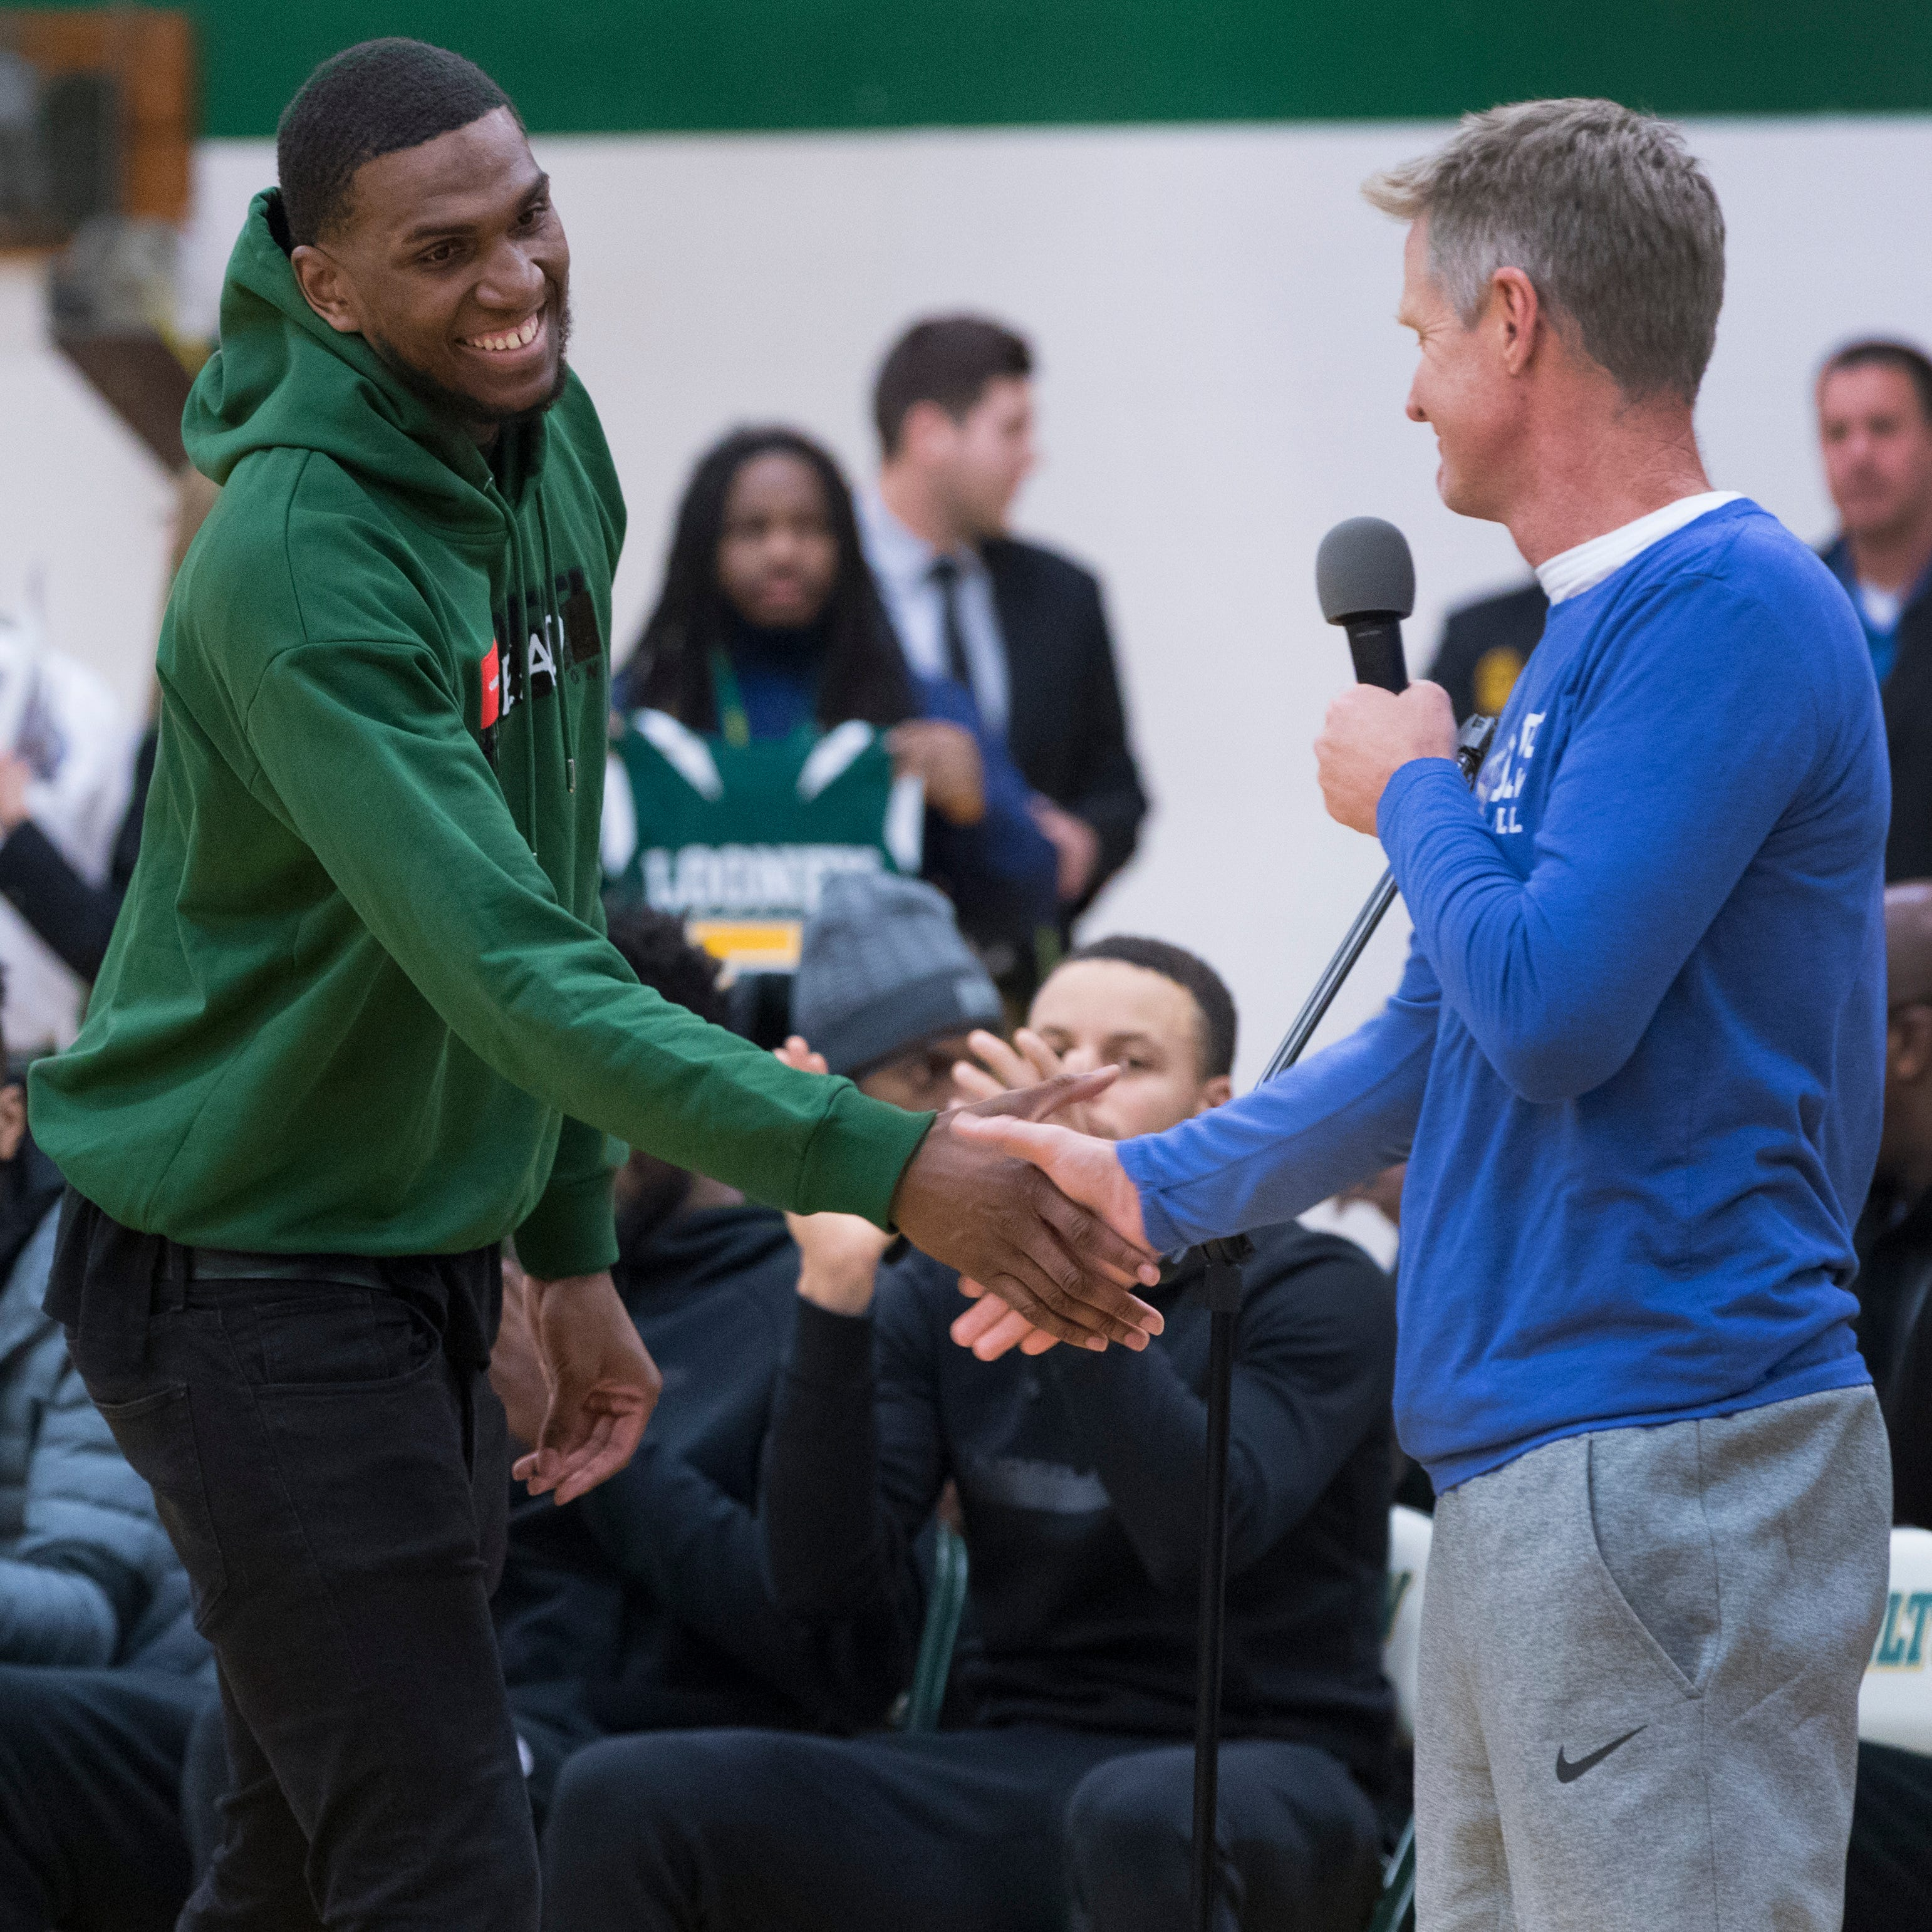 Milwaukee Hamilton held a ceremony to retire Kevon Looney's jersey. Then Kevin Durant, Steph Curry and the Warriors showed up.